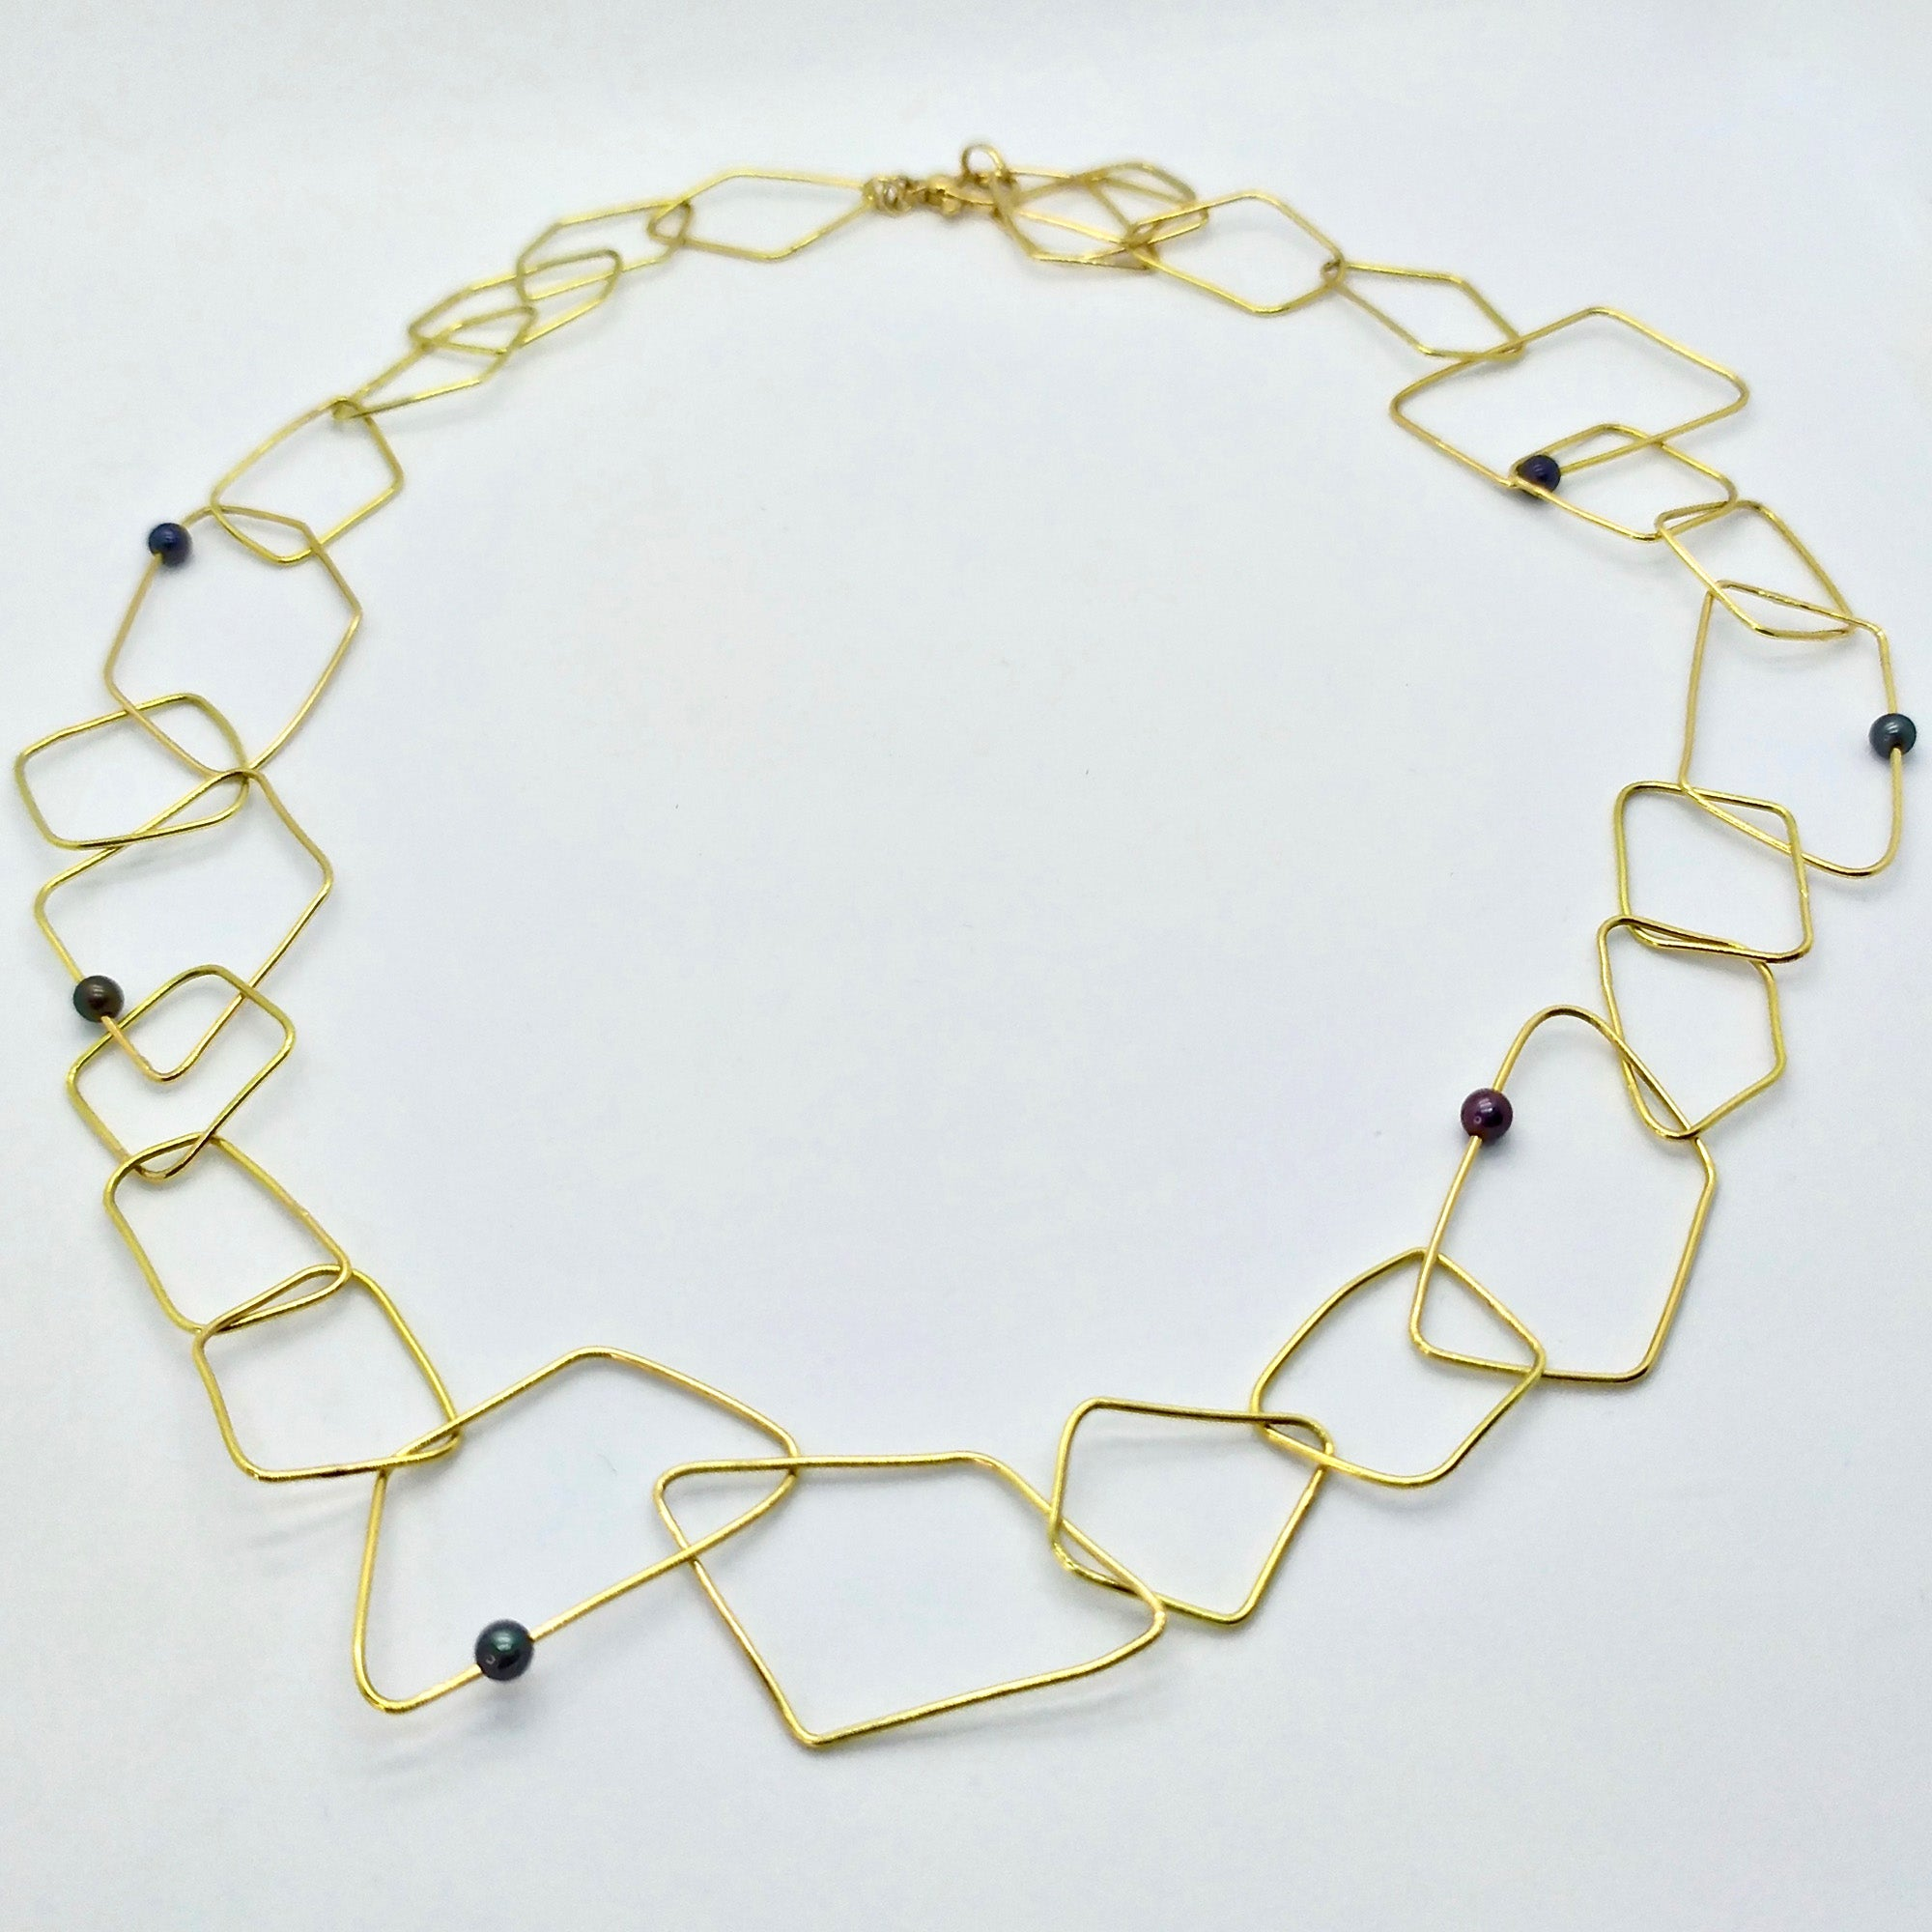 Rhombus Necklace with Black Pearls [Unique Piece] - Florentine Handmade Jewellery